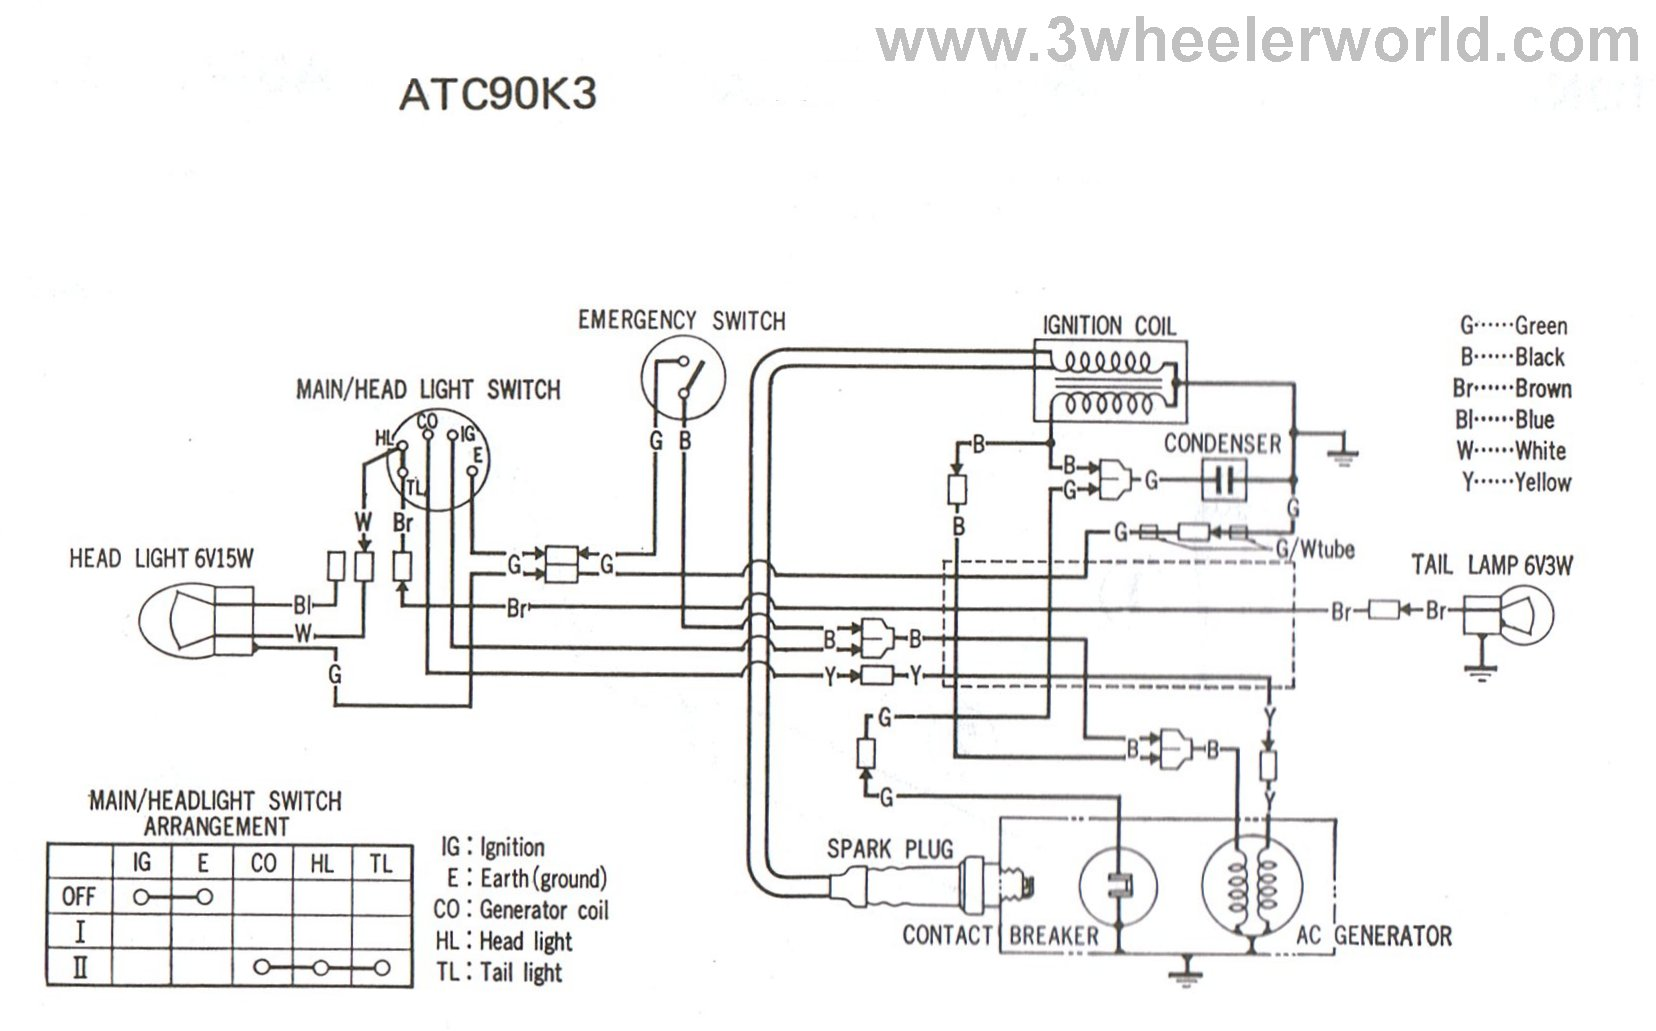 hight resolution of 2003 polaris predator 90 wiring diagram scrambler wiring diagram hostpolaris scrambler 90 wiring diagram wiring diagram